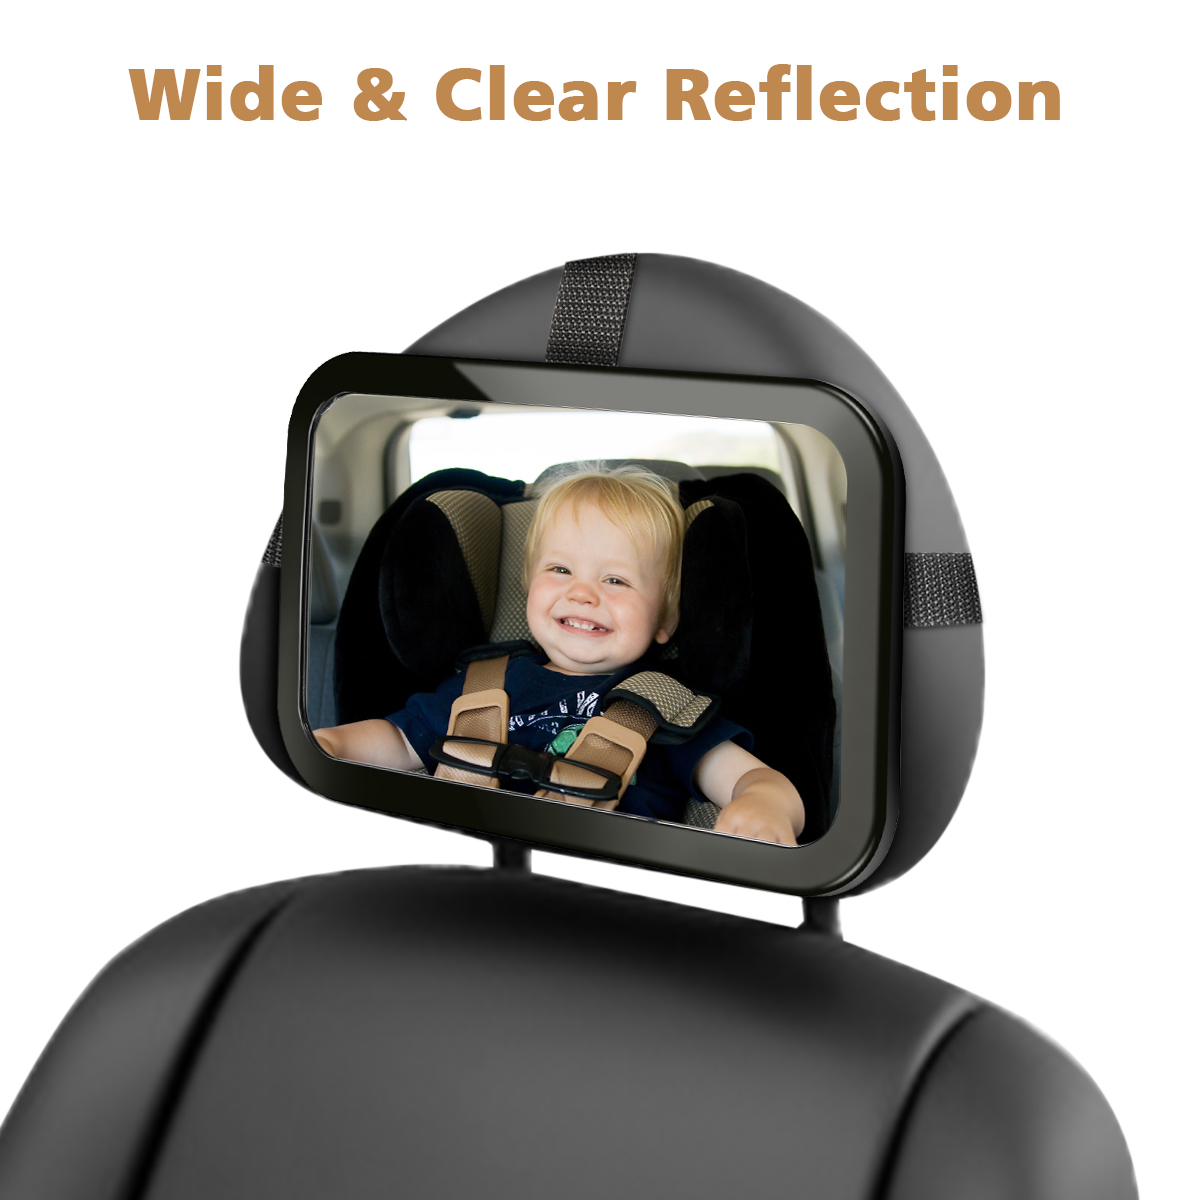 Audew View Rear Baby/Child Car Seat Safety Mirror,Baby Back Seat Mirror,360 Degree Adjustability 29*19cm